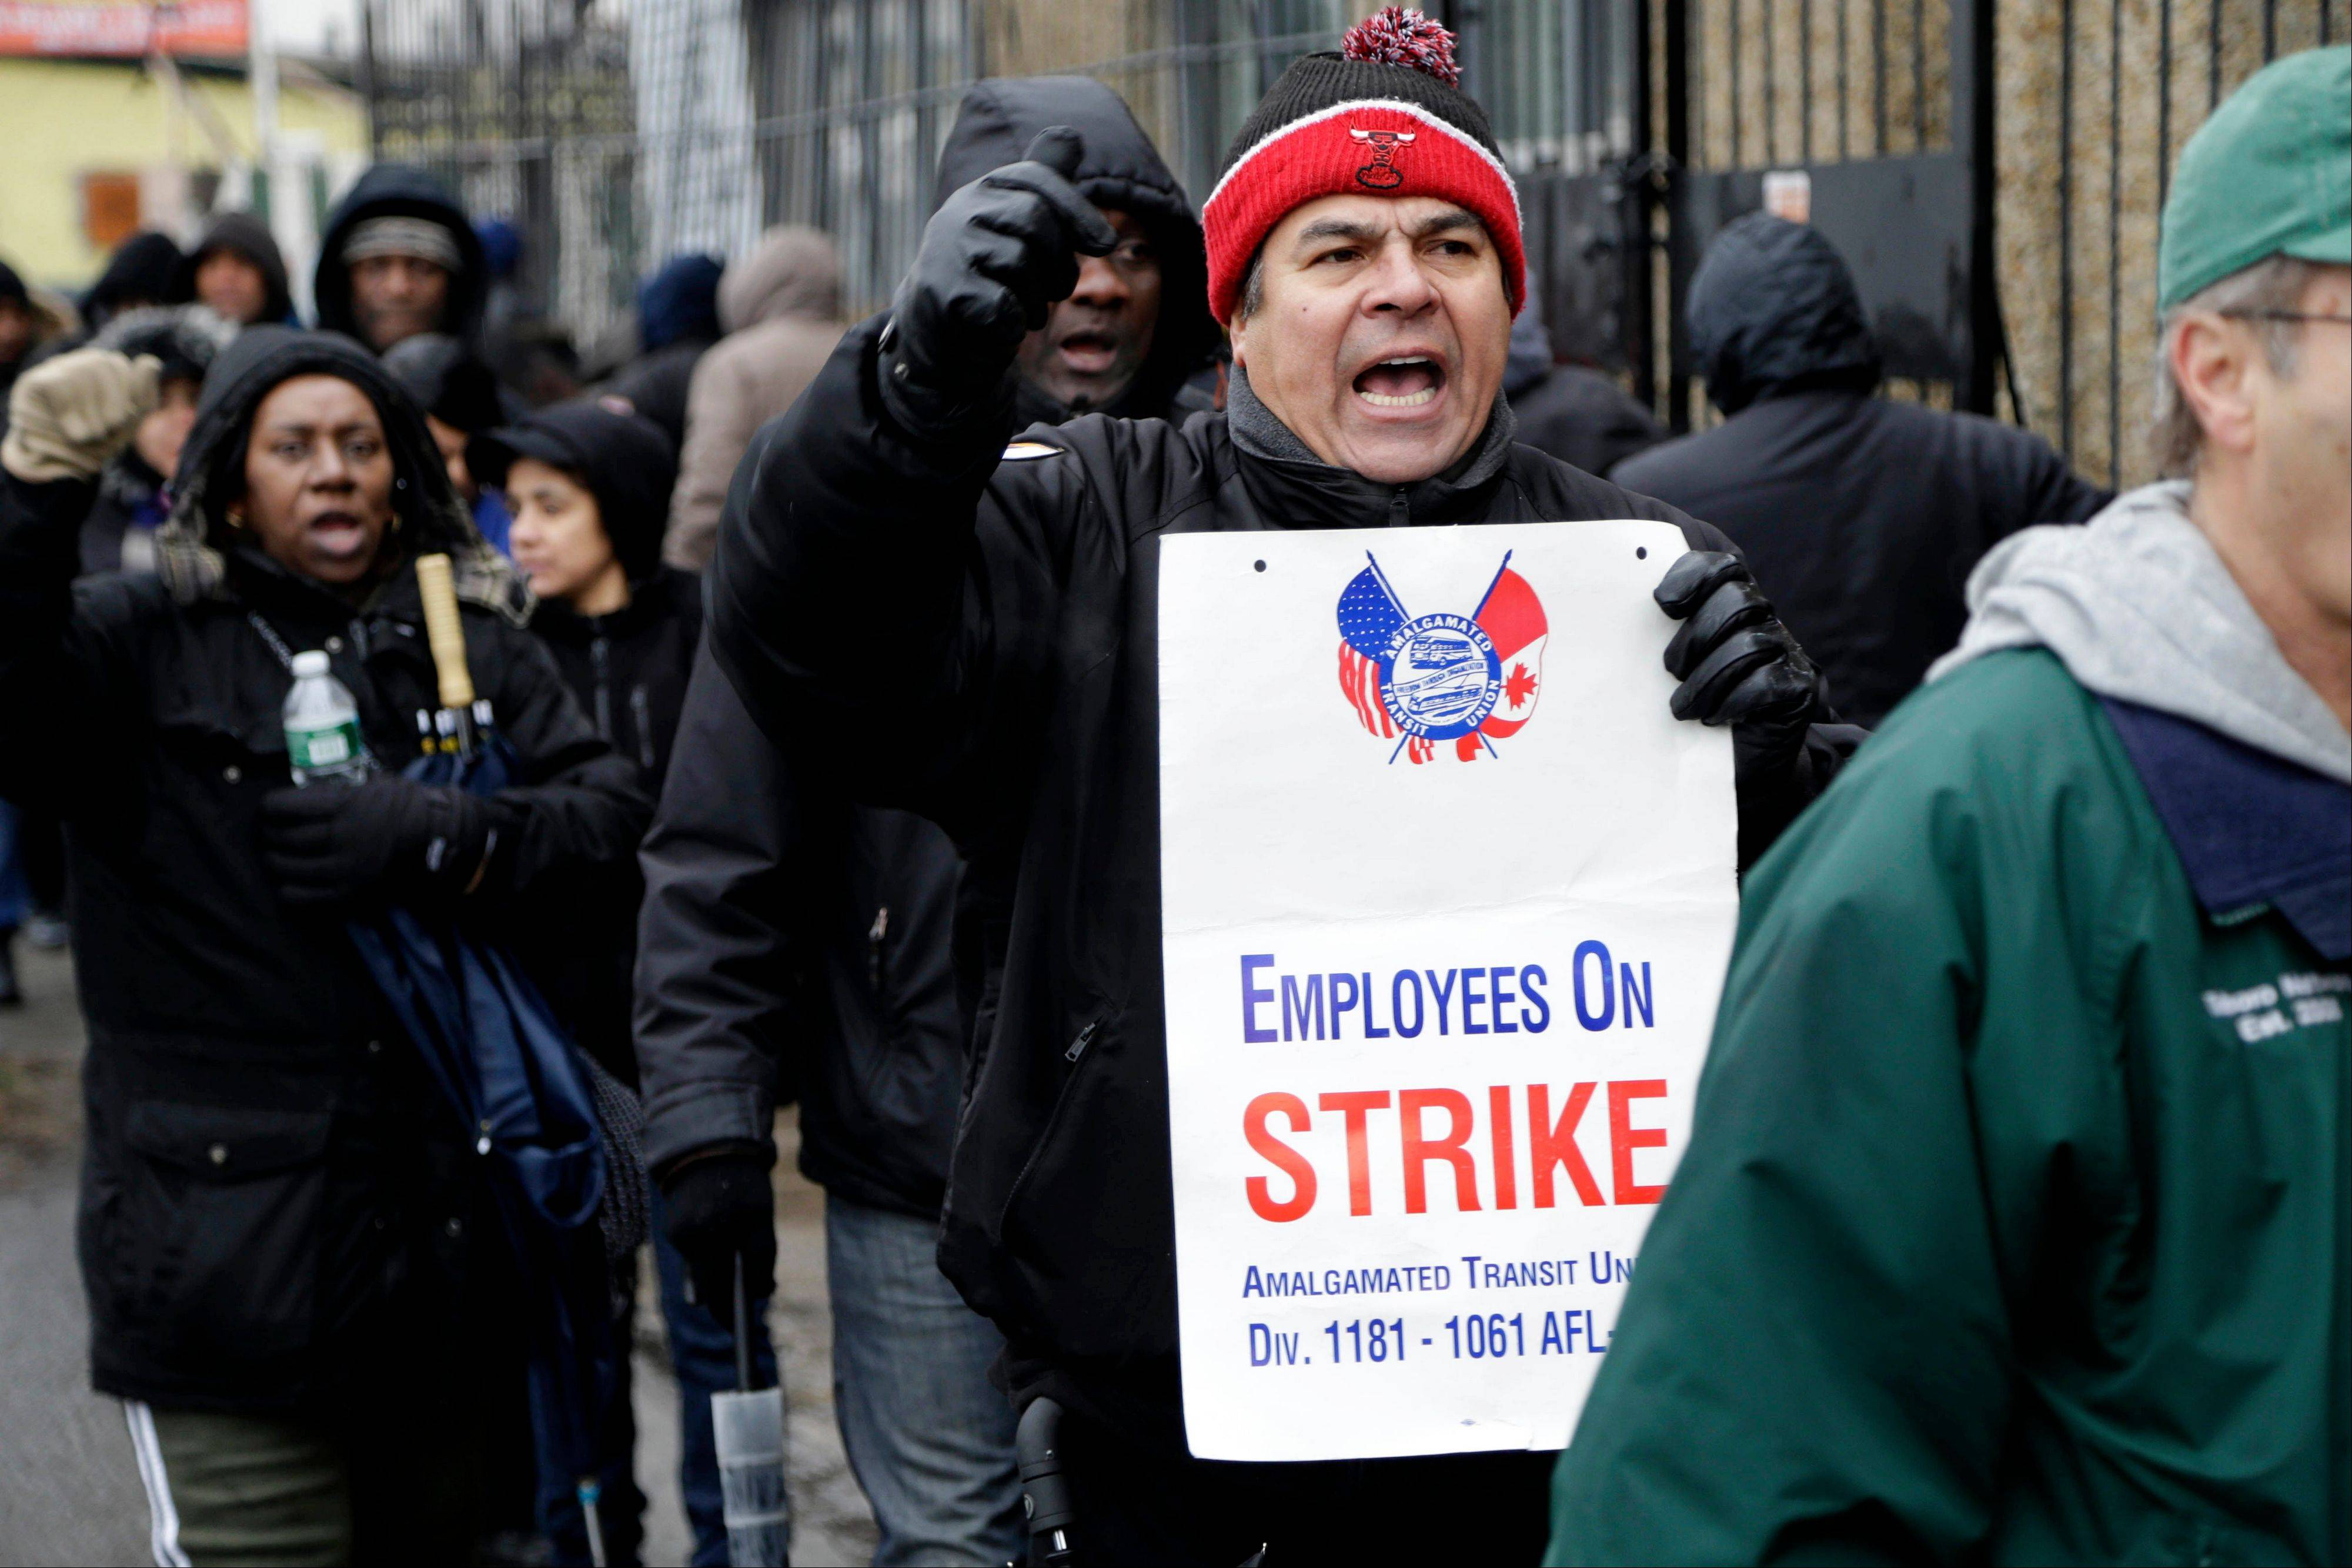 Bus drivers and supporters walk a picket line in front of a bus depot in New York, Wednesday, Jan. 16, 2013. More than 8,000 New York City school bus drivers and aides went on strike over job protection Wednesday morning, leaving some 152,000 students trying to find other ways to get to school.